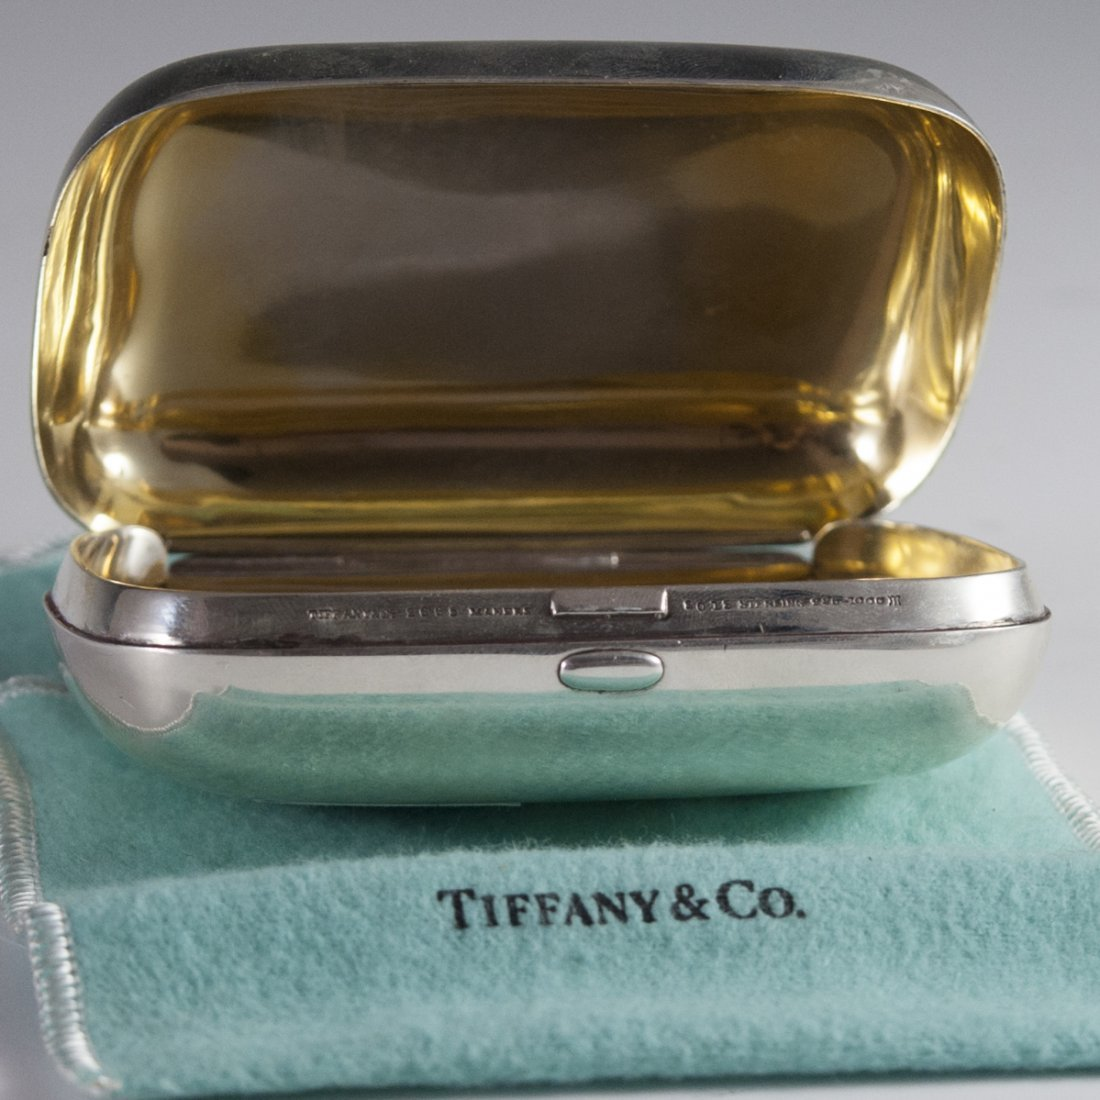 Tiffany & Co. Makers Sterling Pill Box - 4